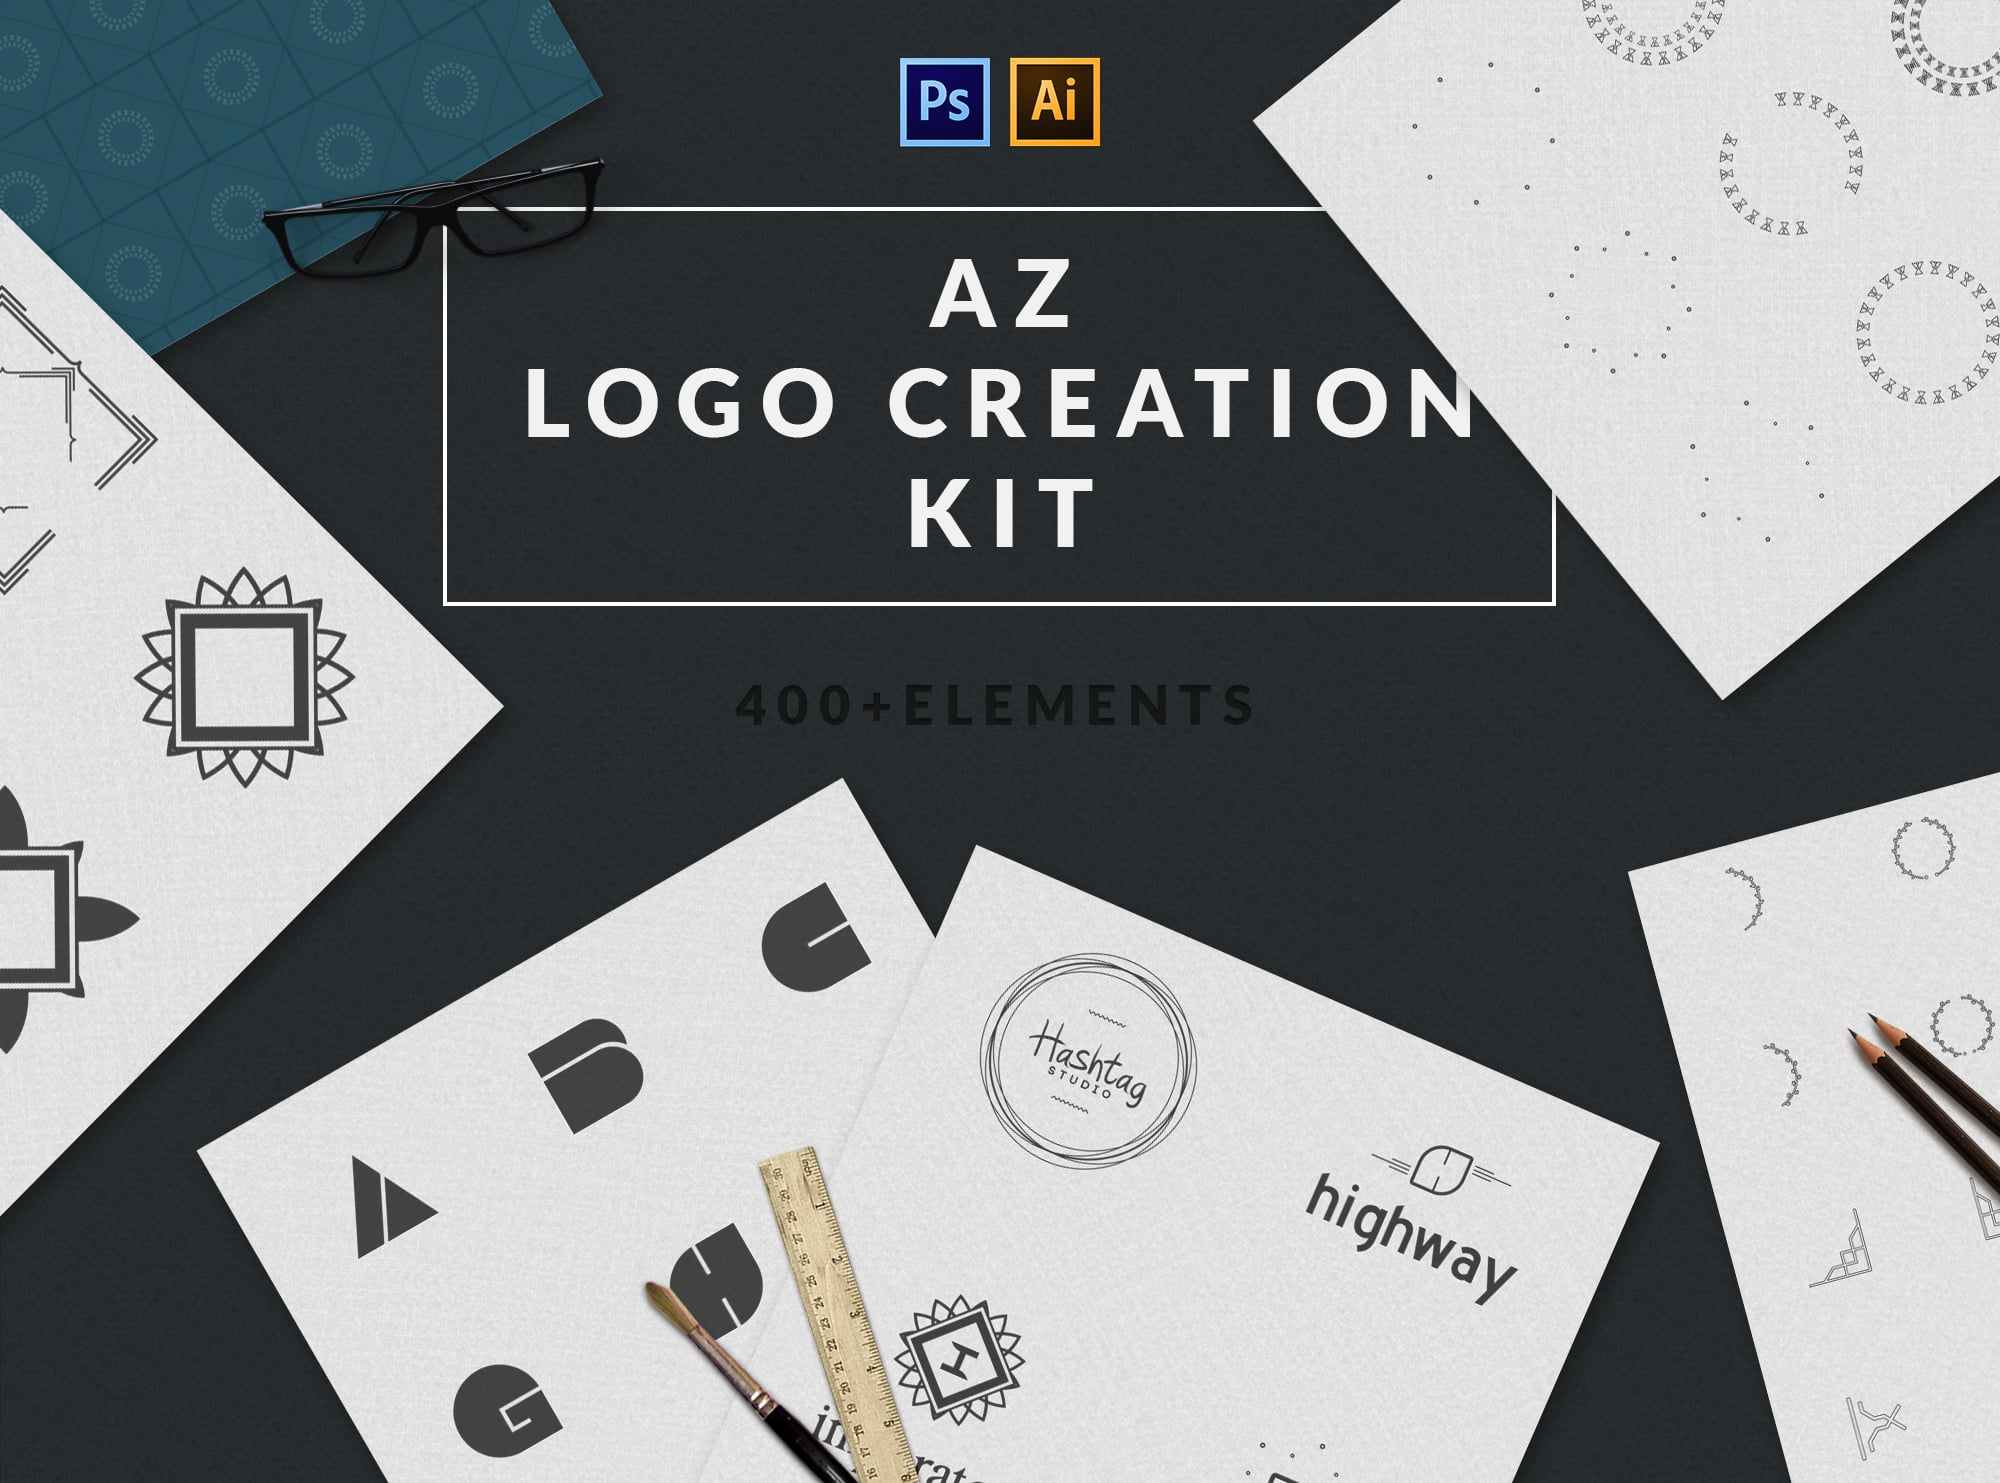 4 in 1 Logo Design Bundle - The sky is the limit - Pr